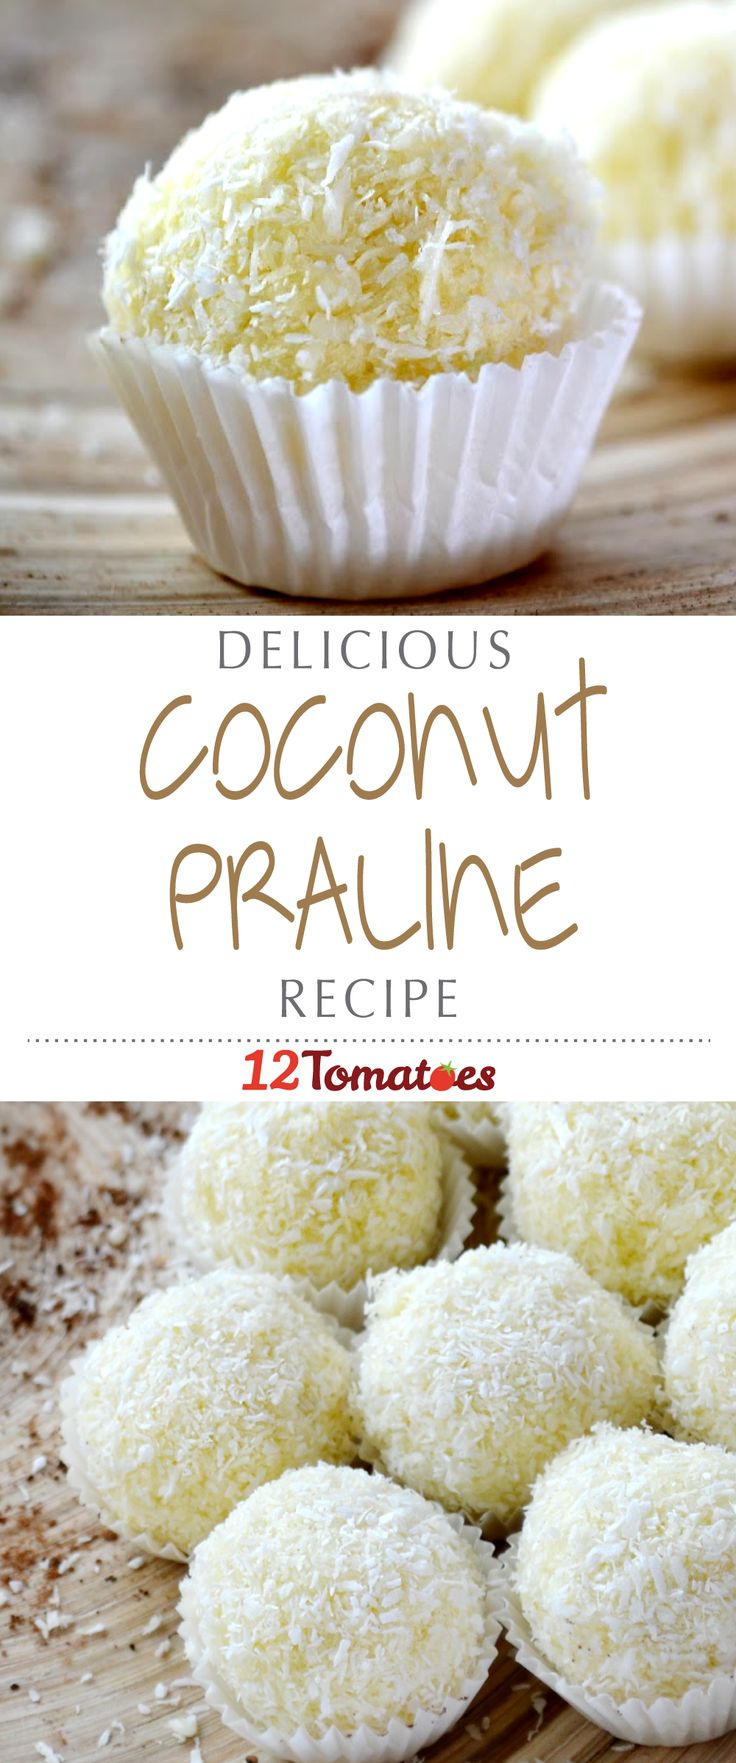 Coconut Pralines | Don't think of the standard pecan-based pralines when viewing this recipe. Instead, these are fluffy, sweet candies that combine sugar and coconut to heavenly effect.